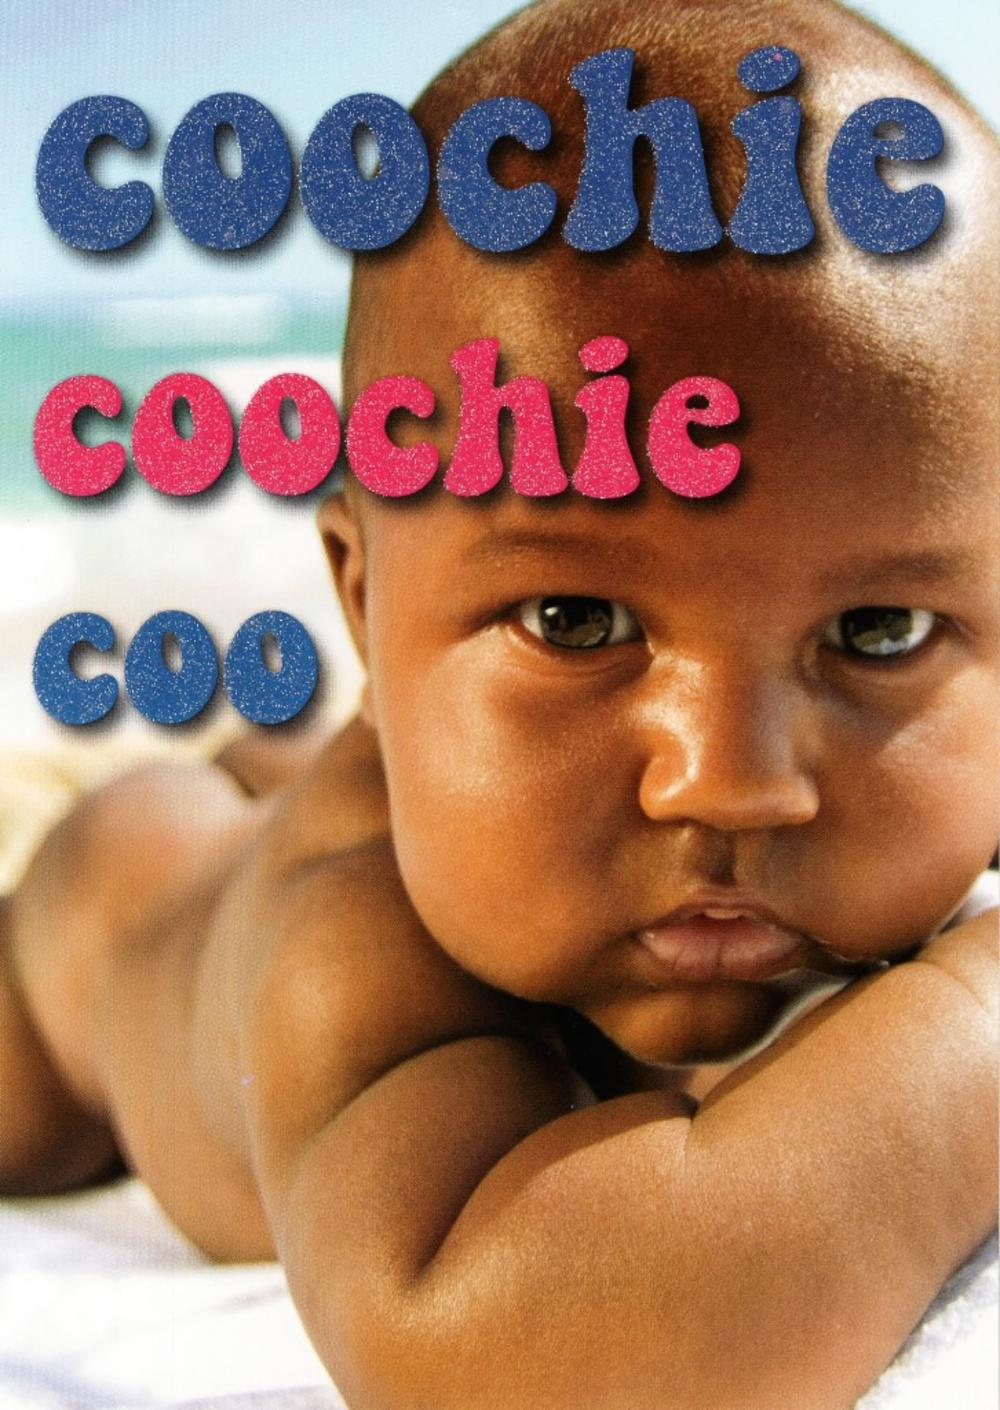 New Baby Coochie Coochie Coo Funny Greeting Card